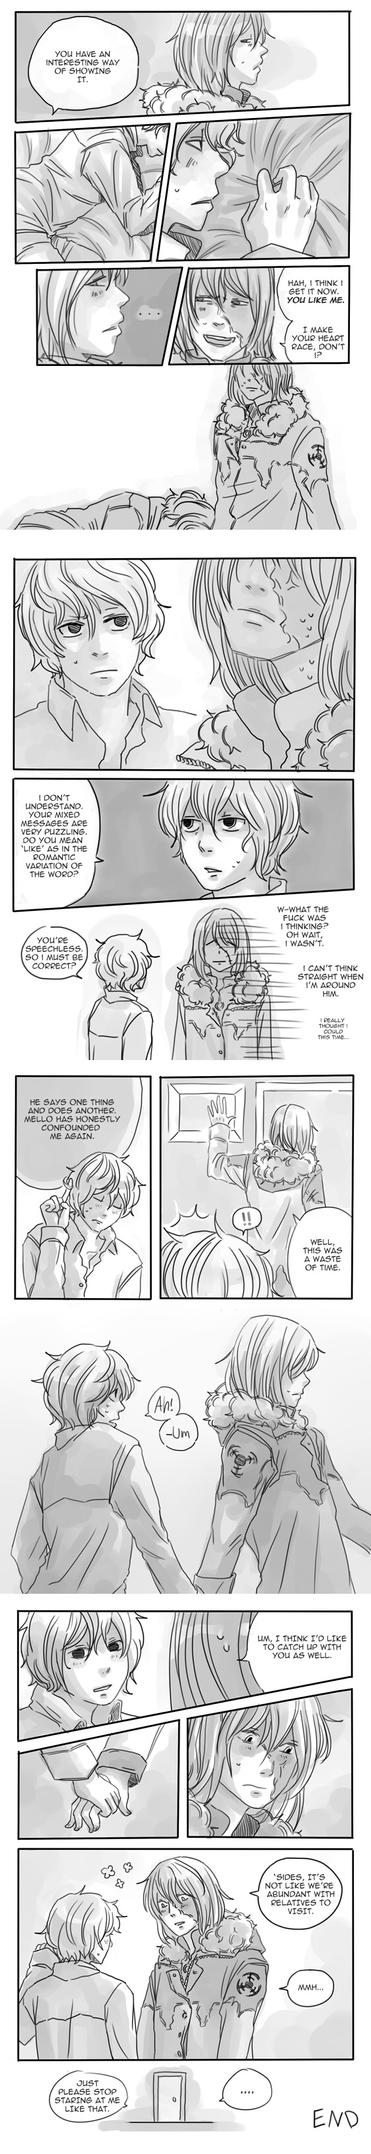 Old Mello B-day comic (2/2) by cloverinblue